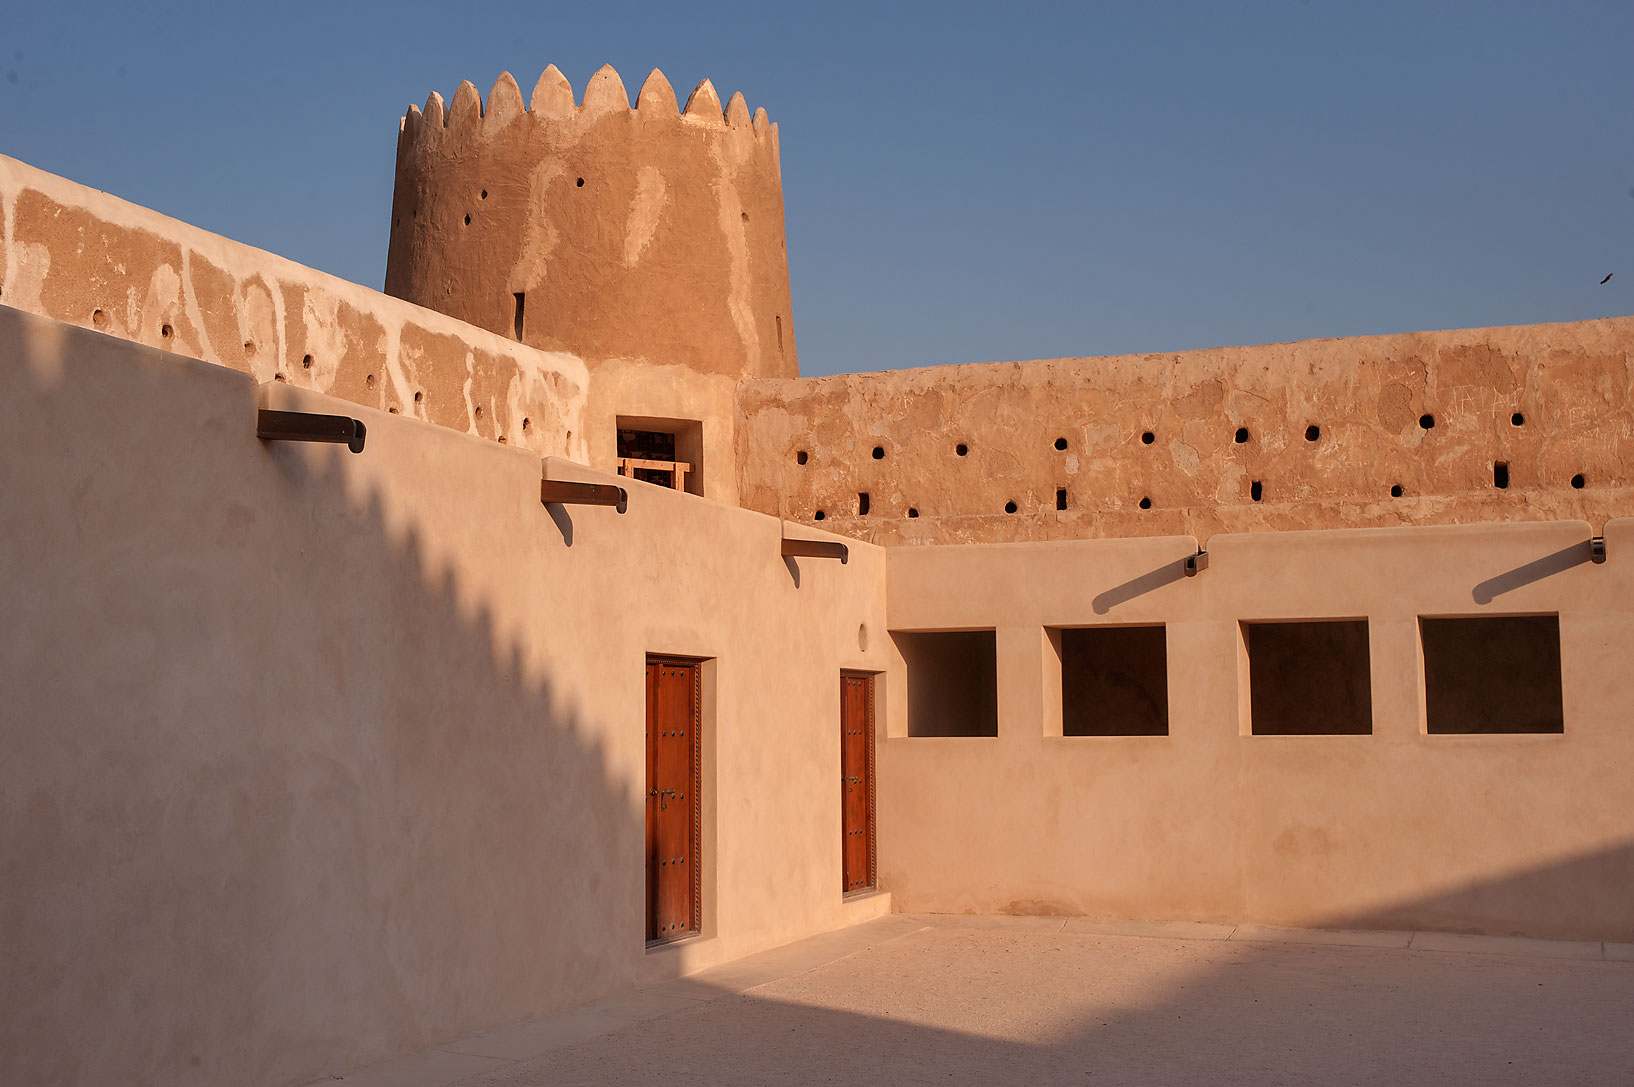 Yard inside Zubara Fort at sunrise. Northern Qatar